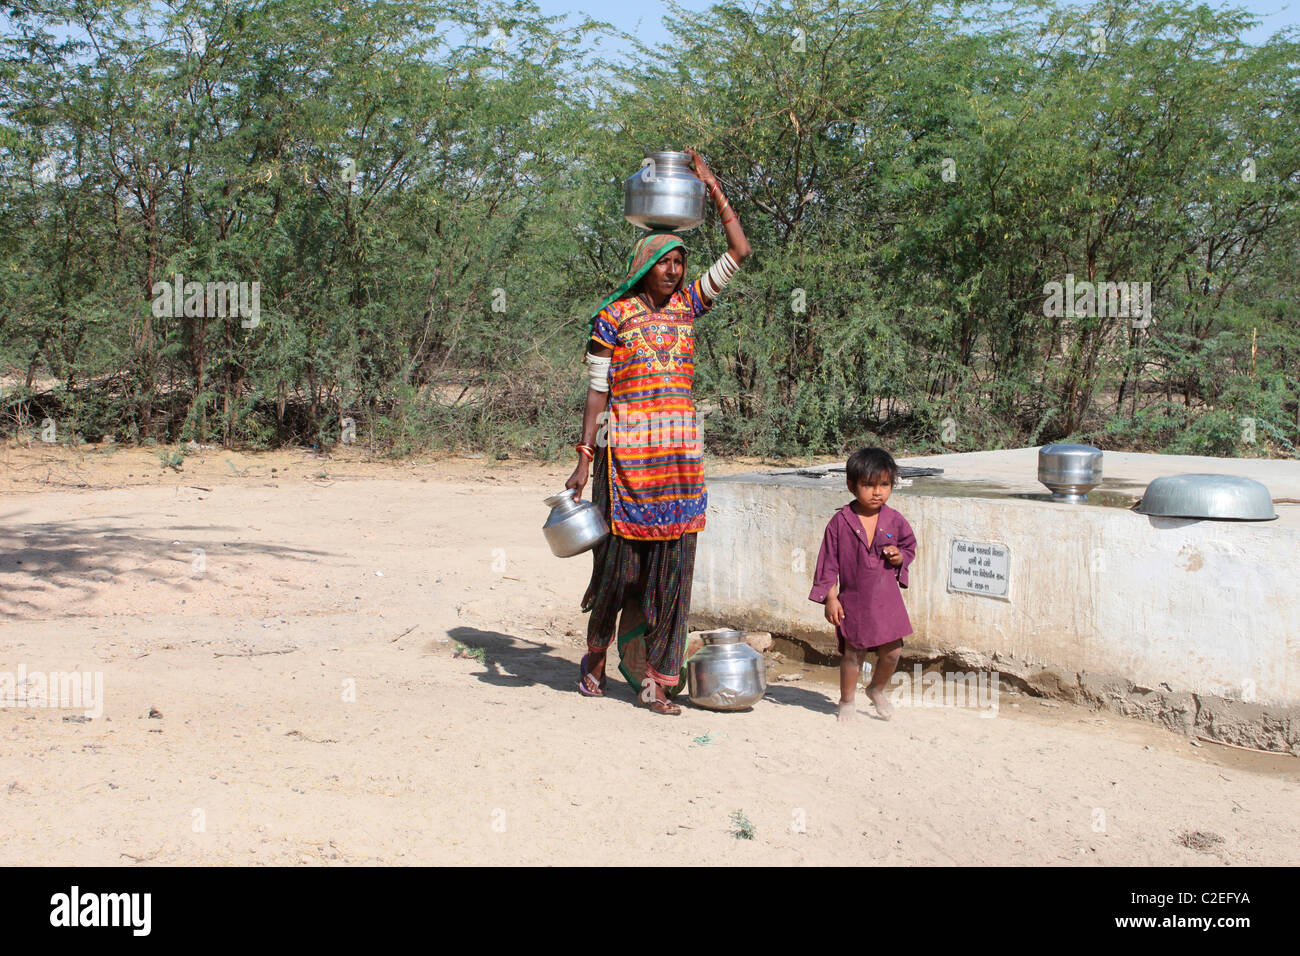 A woman carrying water - Stock Image